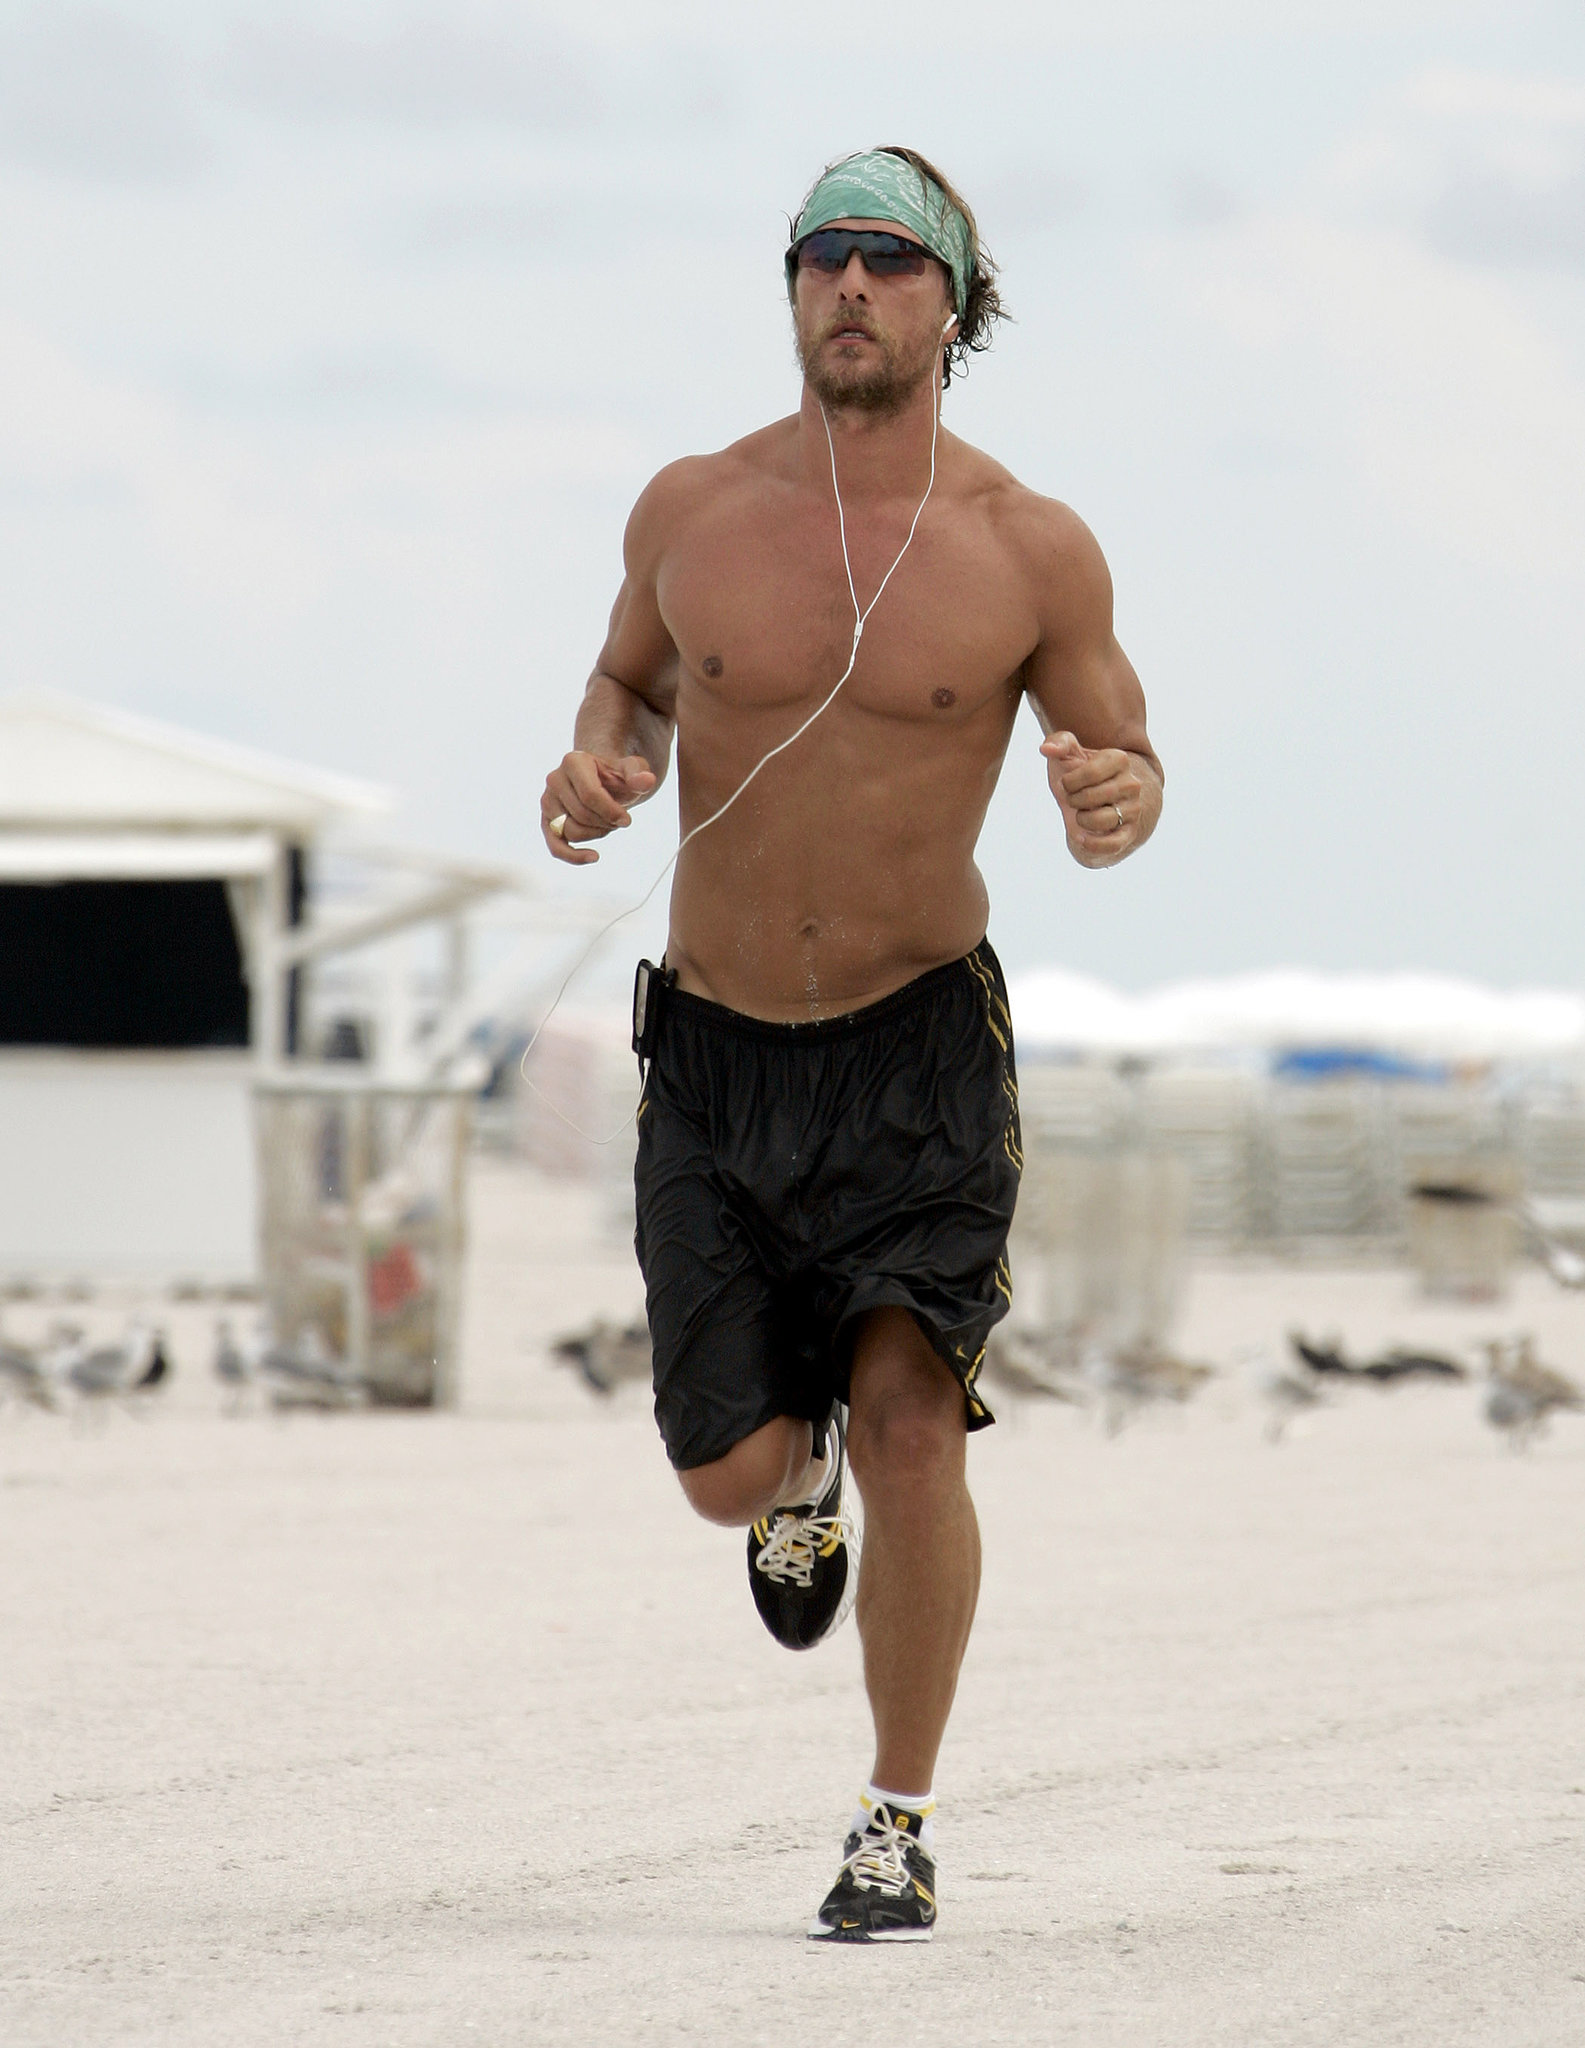 matthew-mcconaughey-scruffy-miami-beach-run-august-2006.jpg